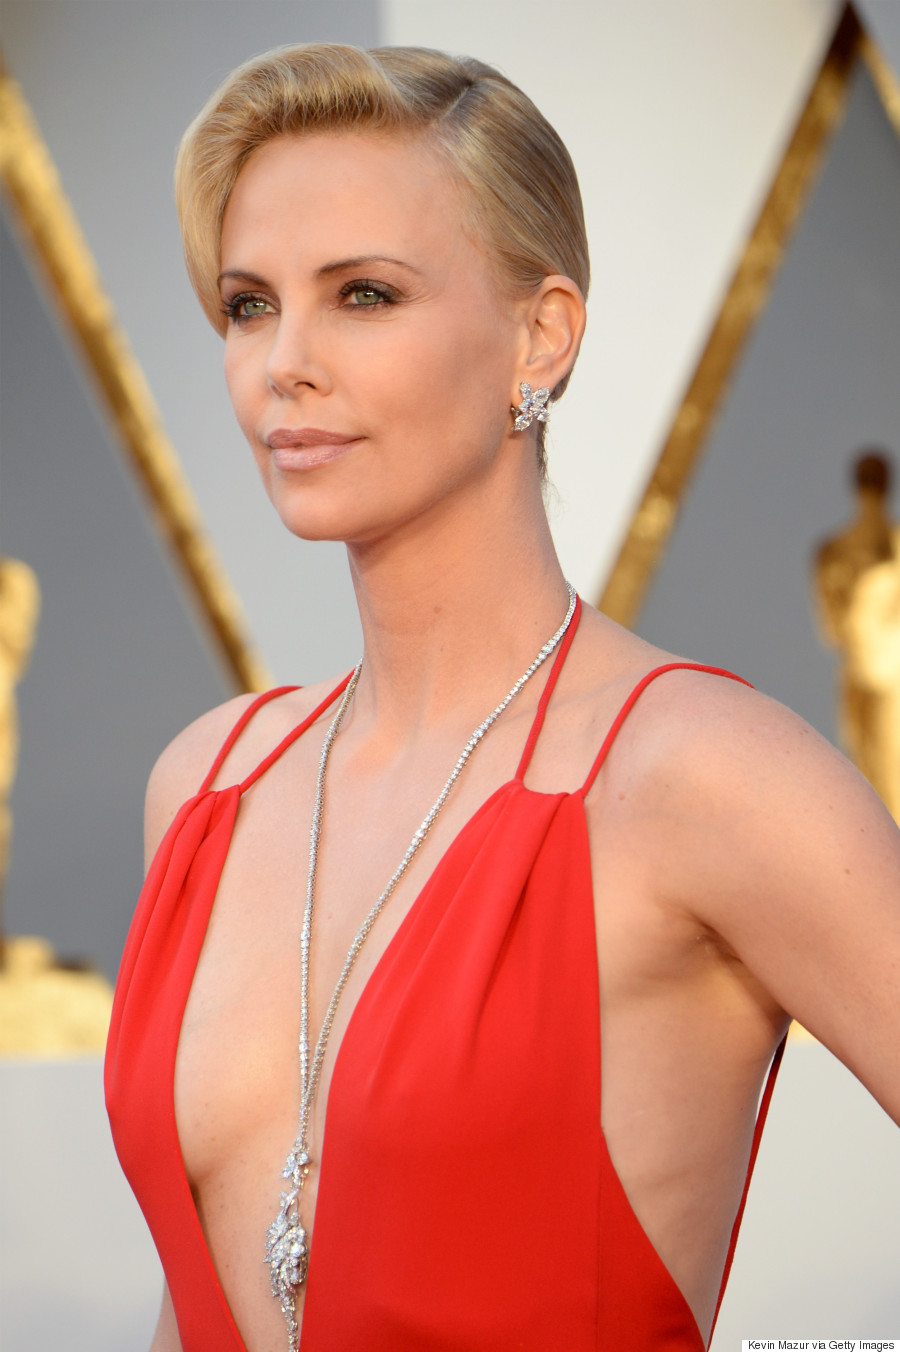 Charlize Theron- 5.84